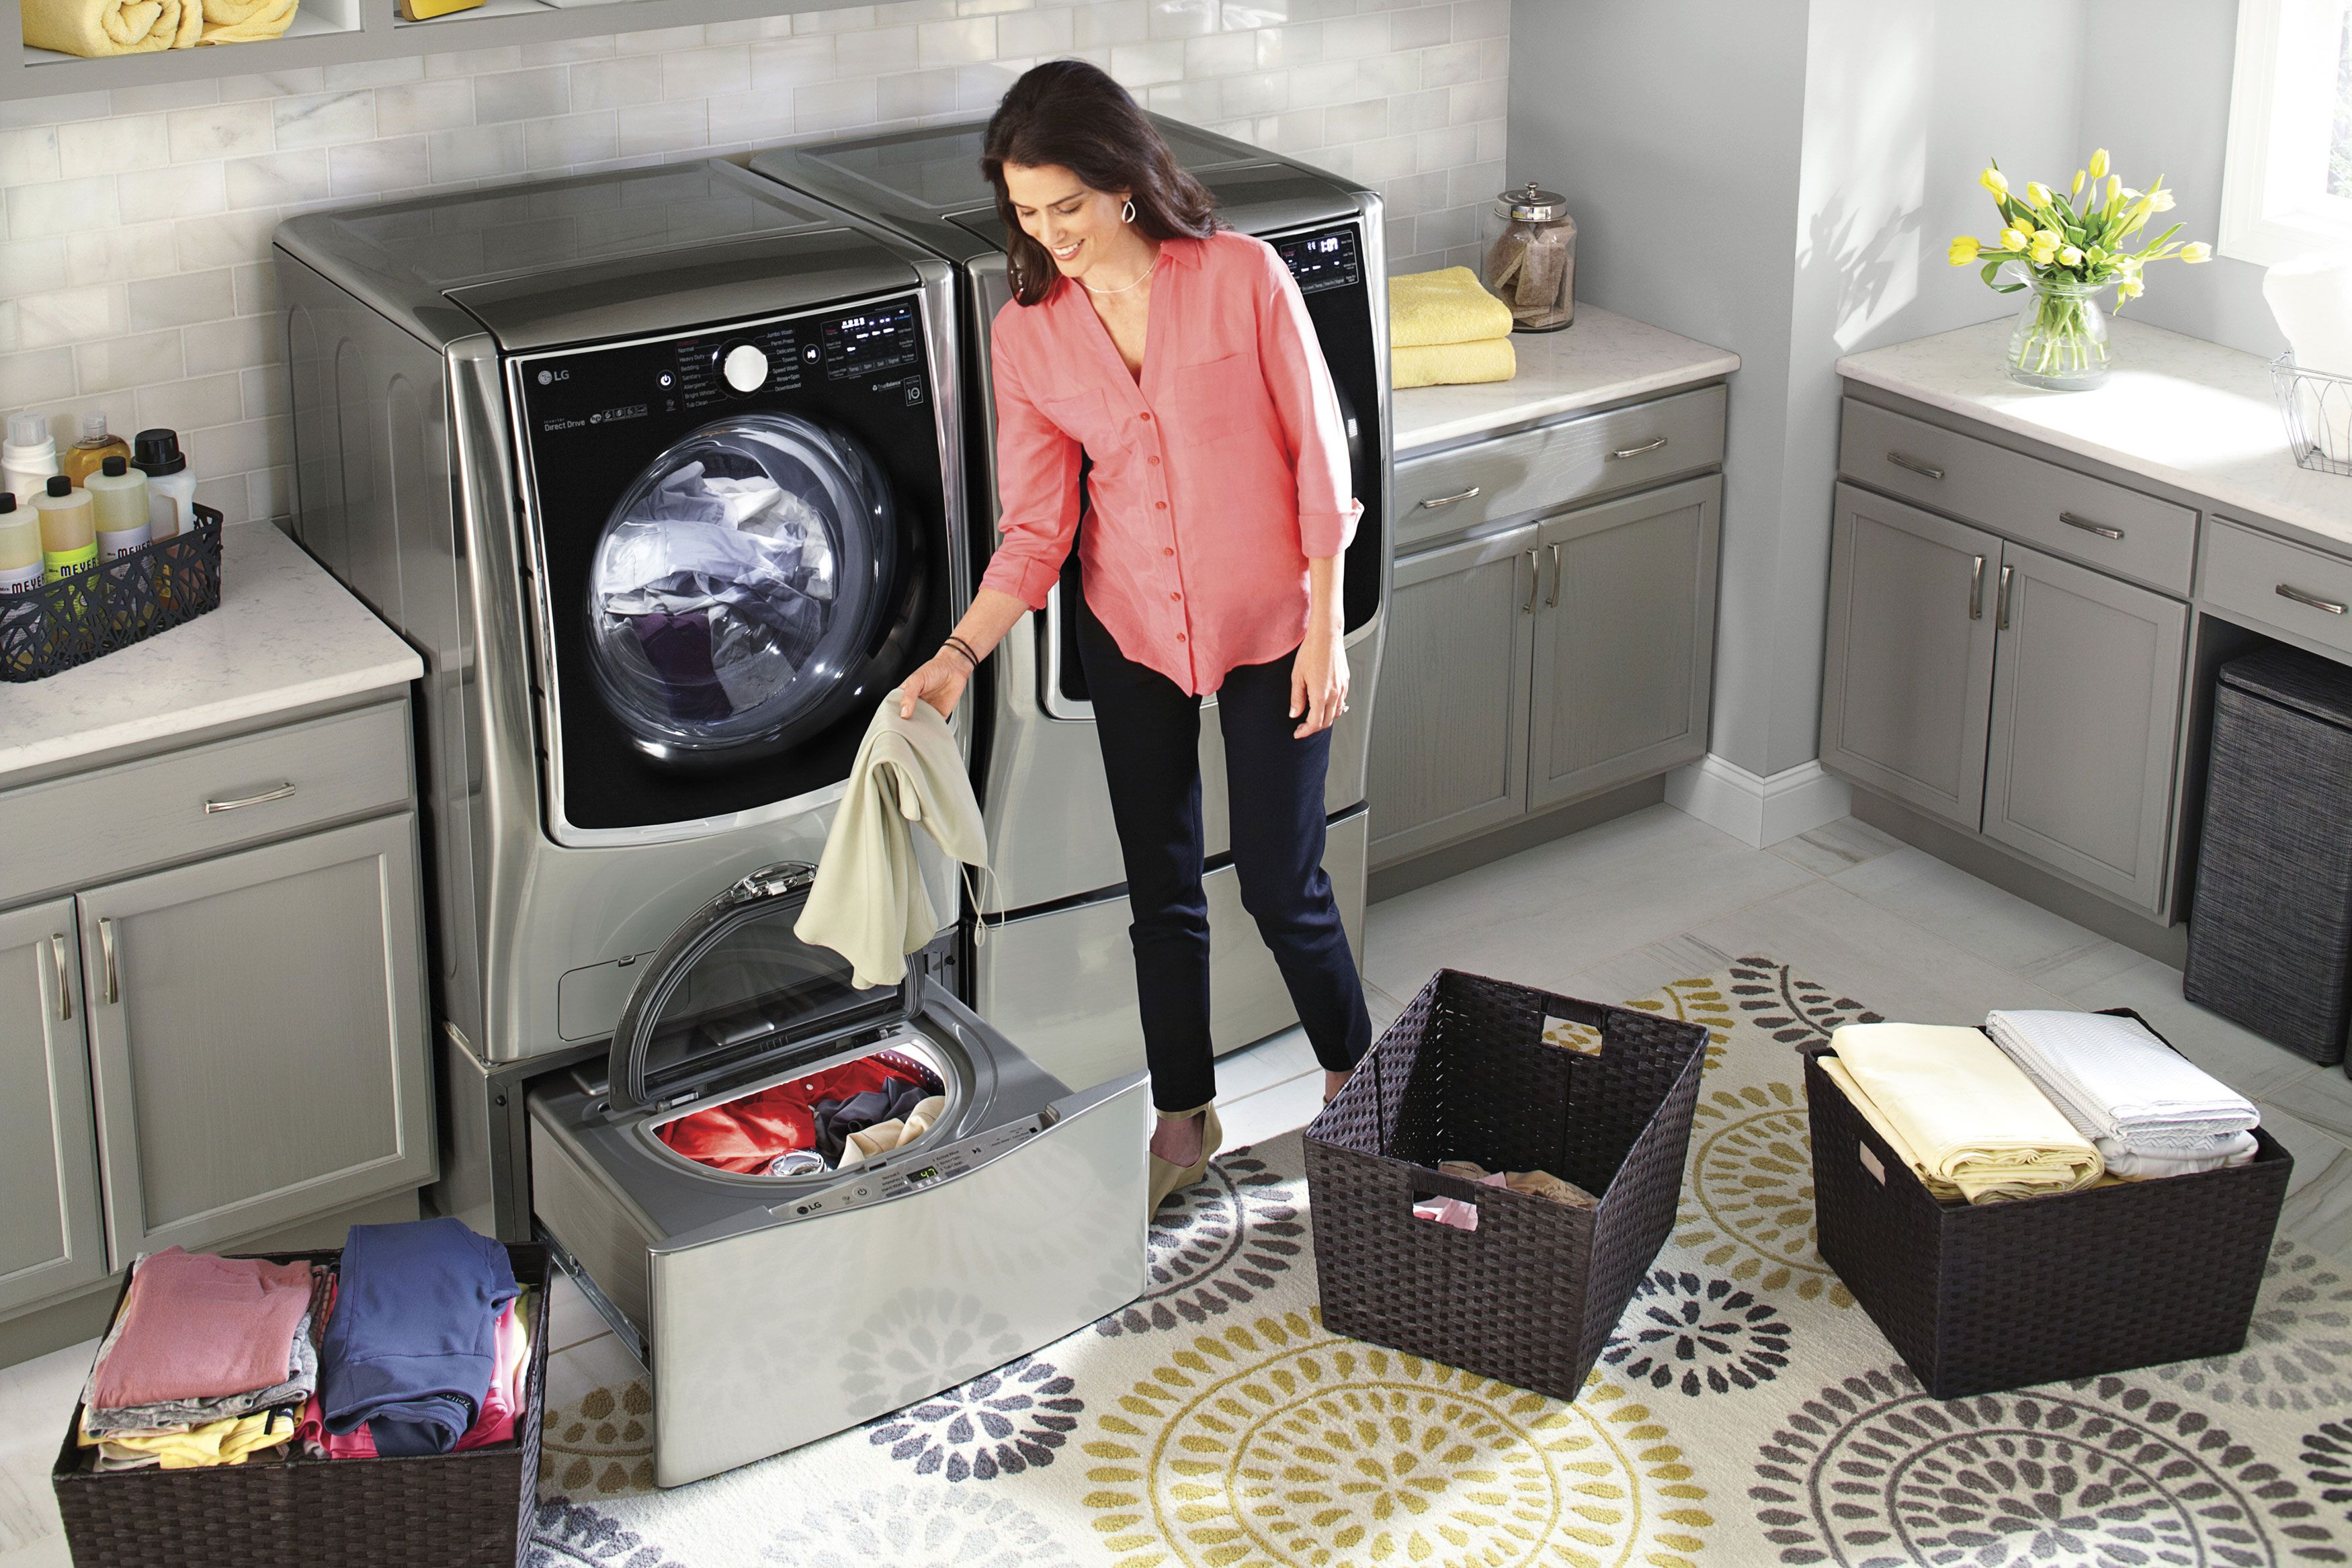 ft electrolux smartboost fast feature with cycle cu main titanium steam pedestal washer